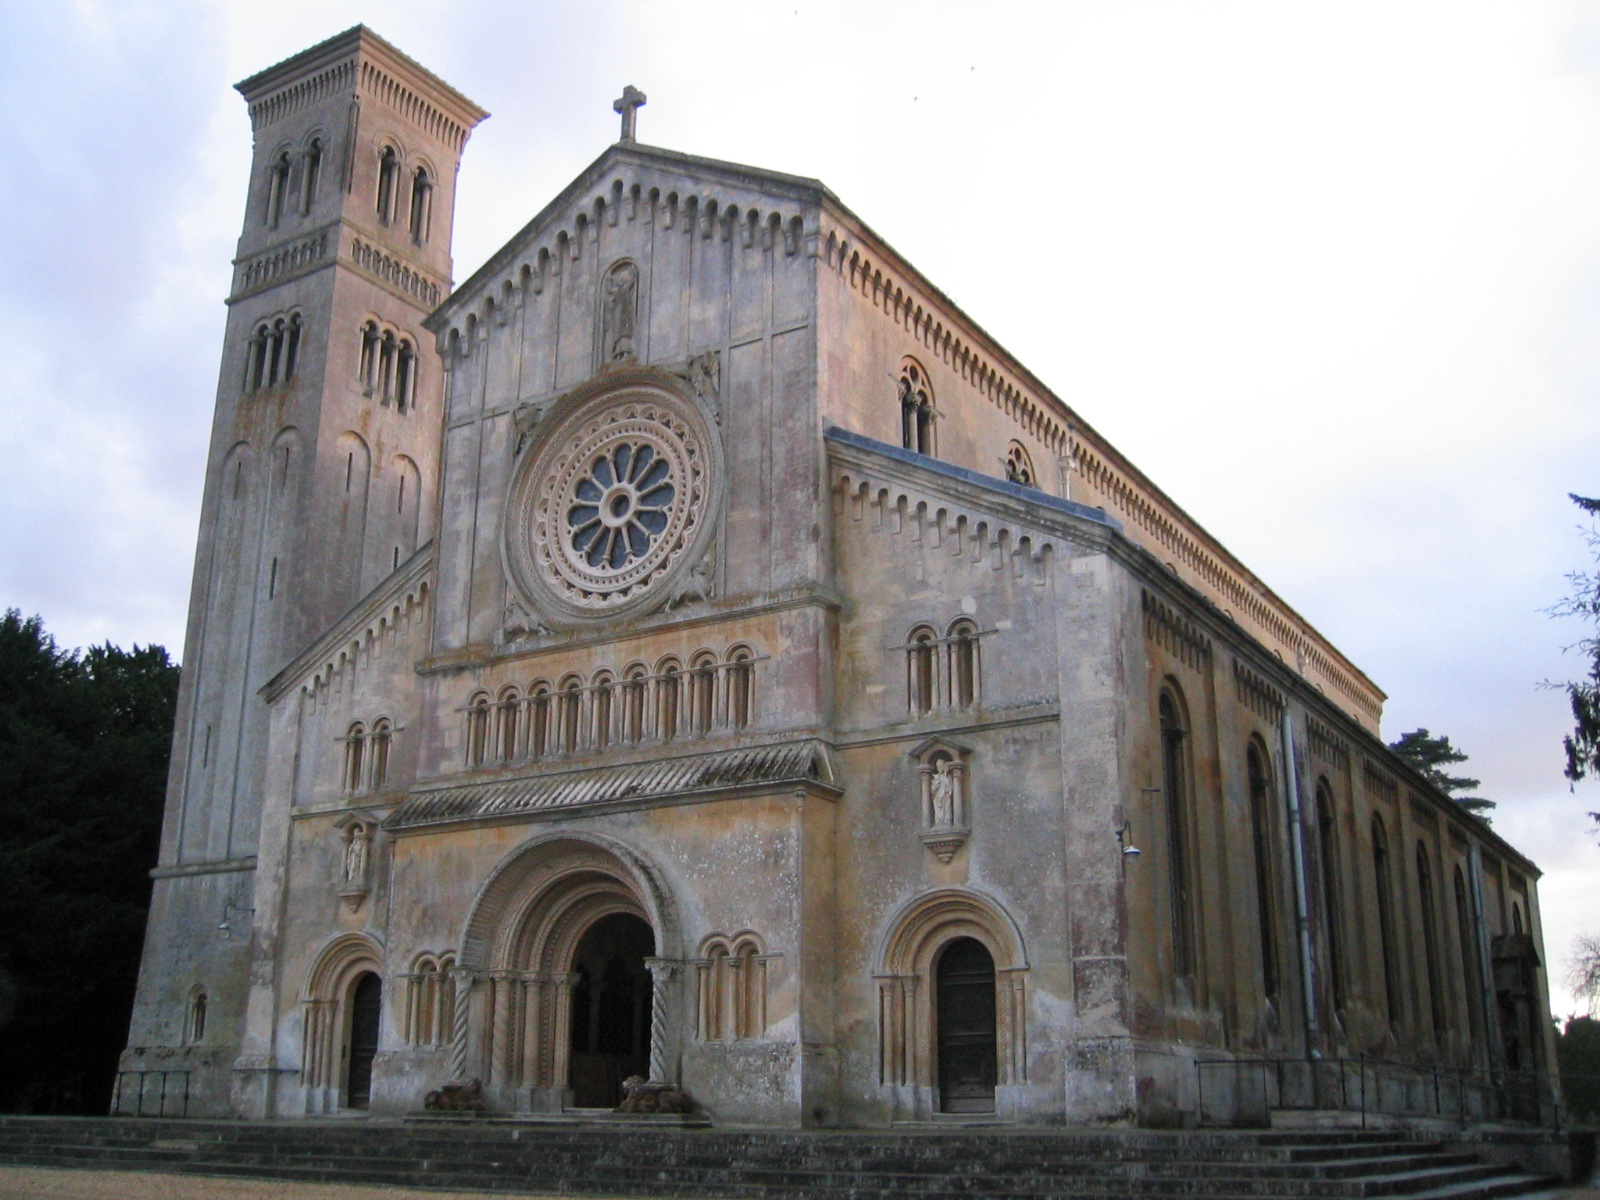 A beginner's guide to Romanesque architecture